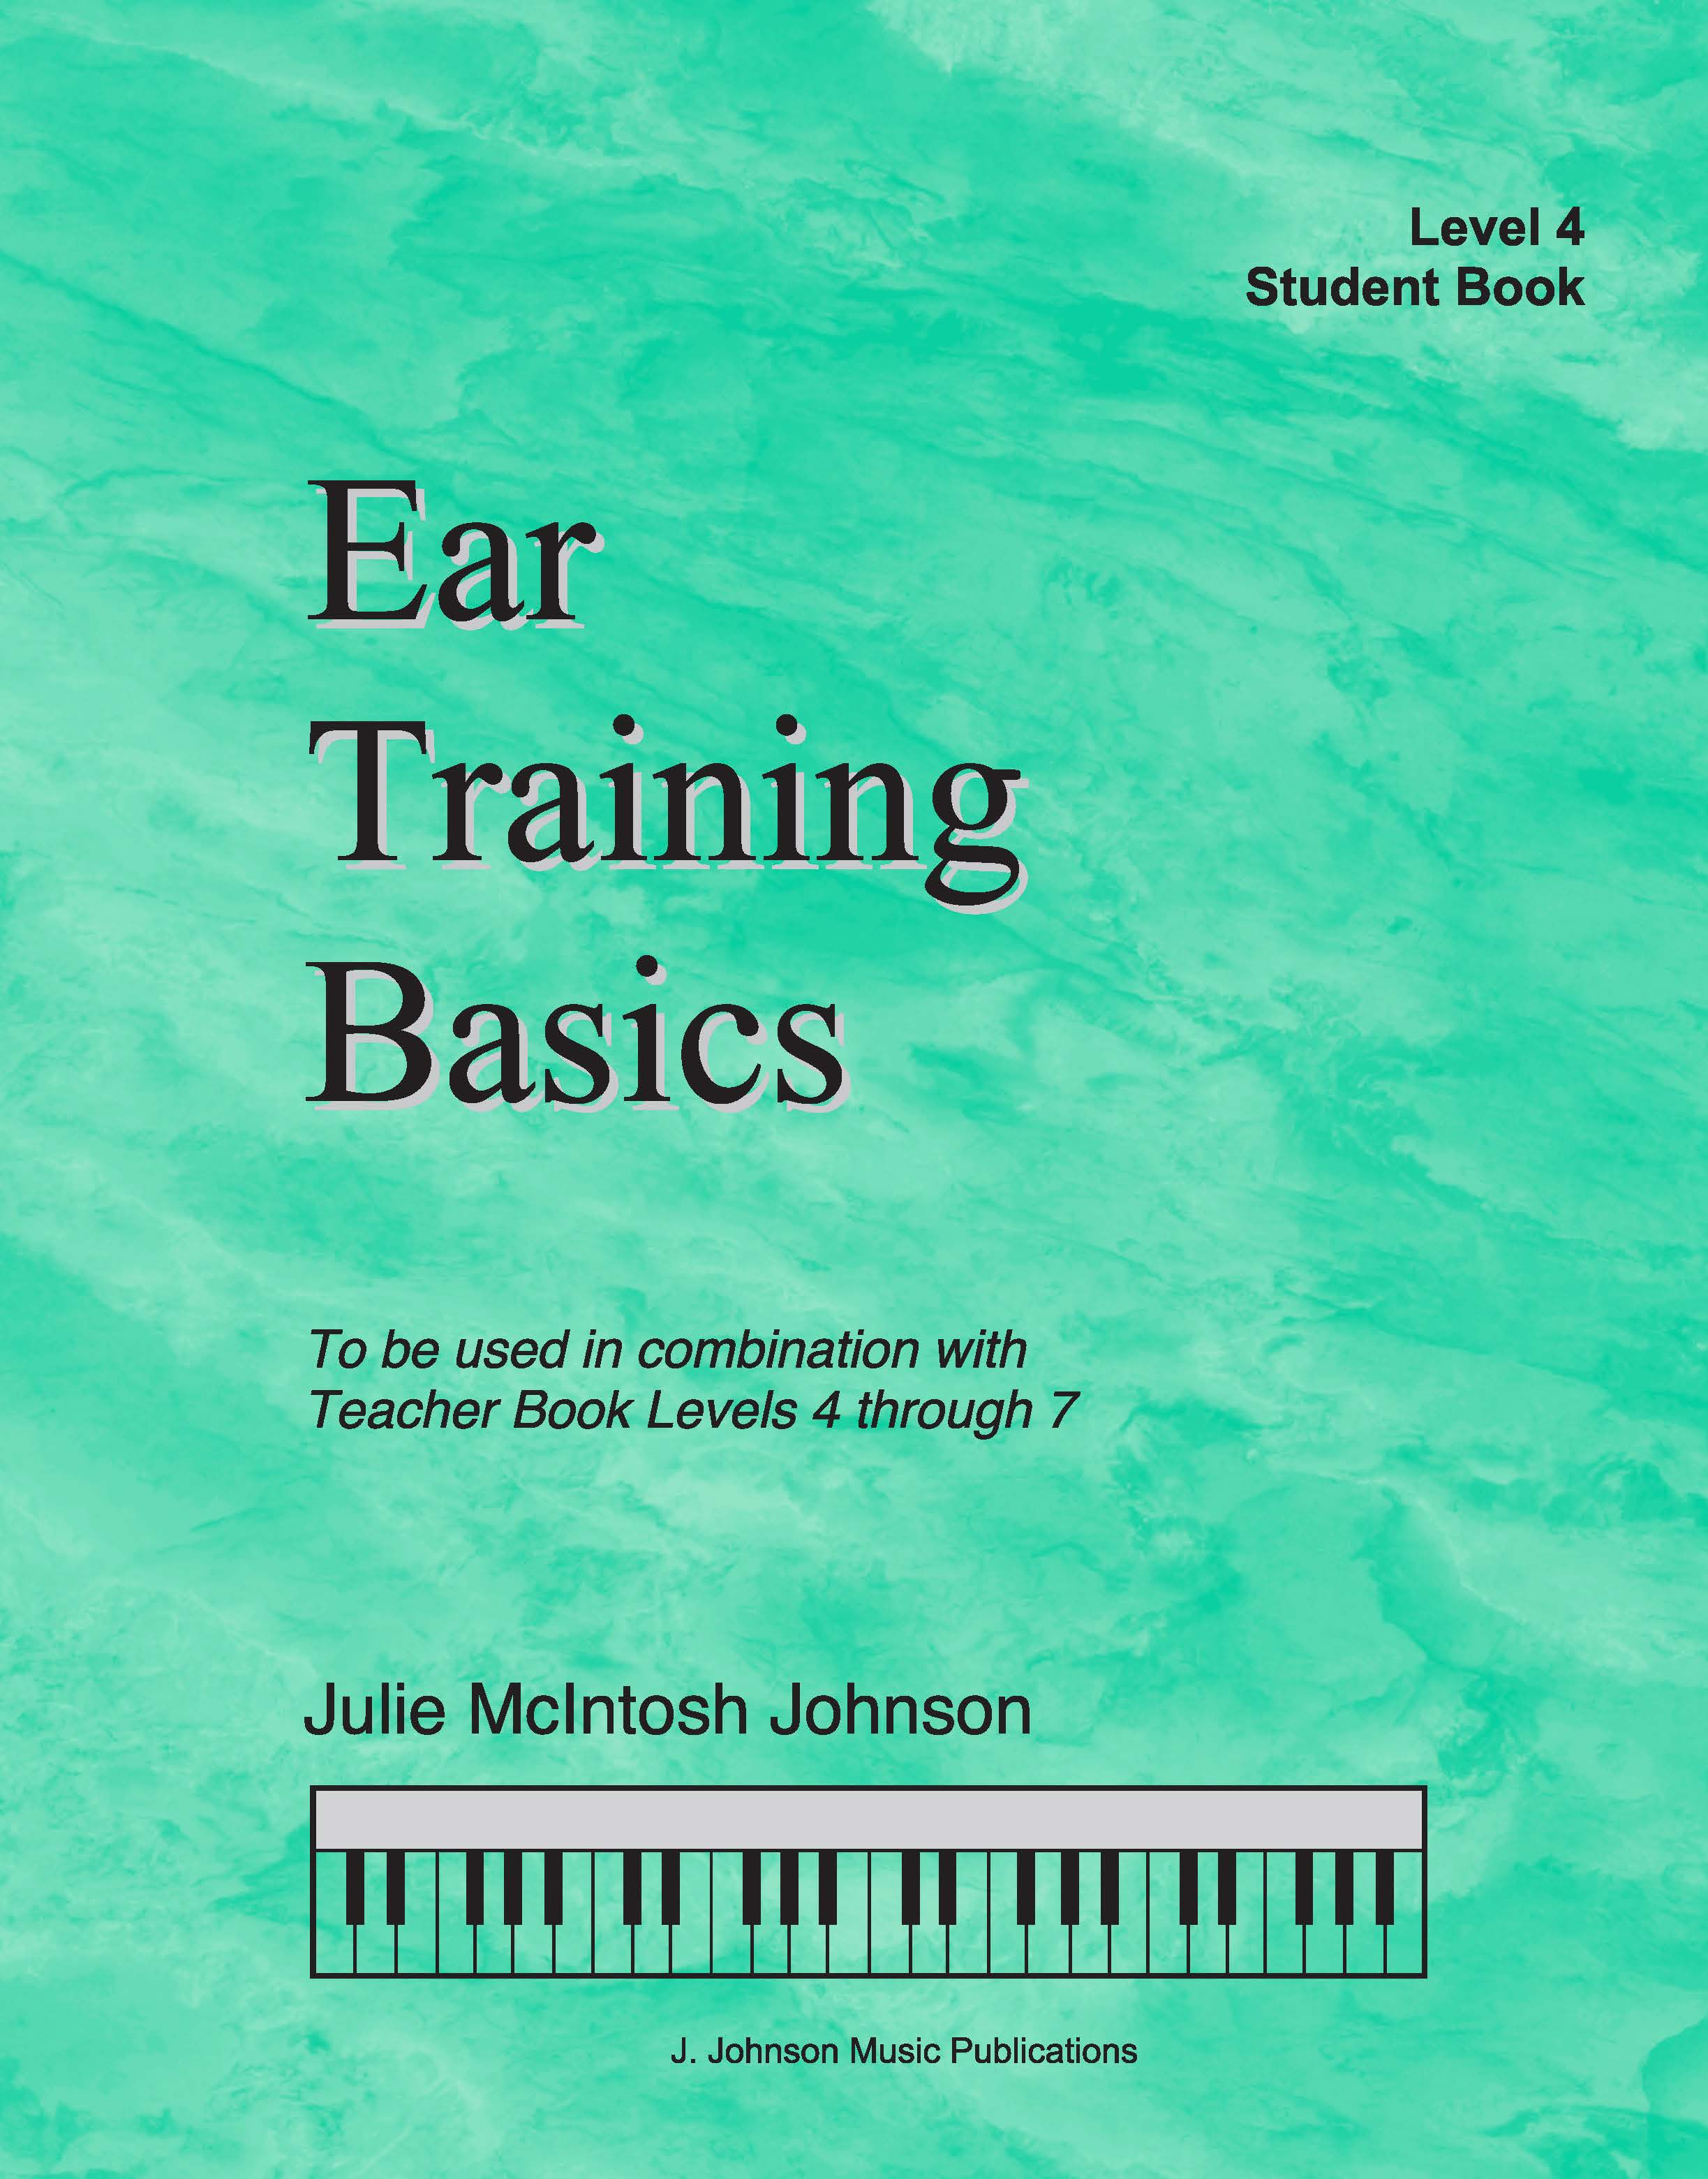 Ear Training Basics Level 4